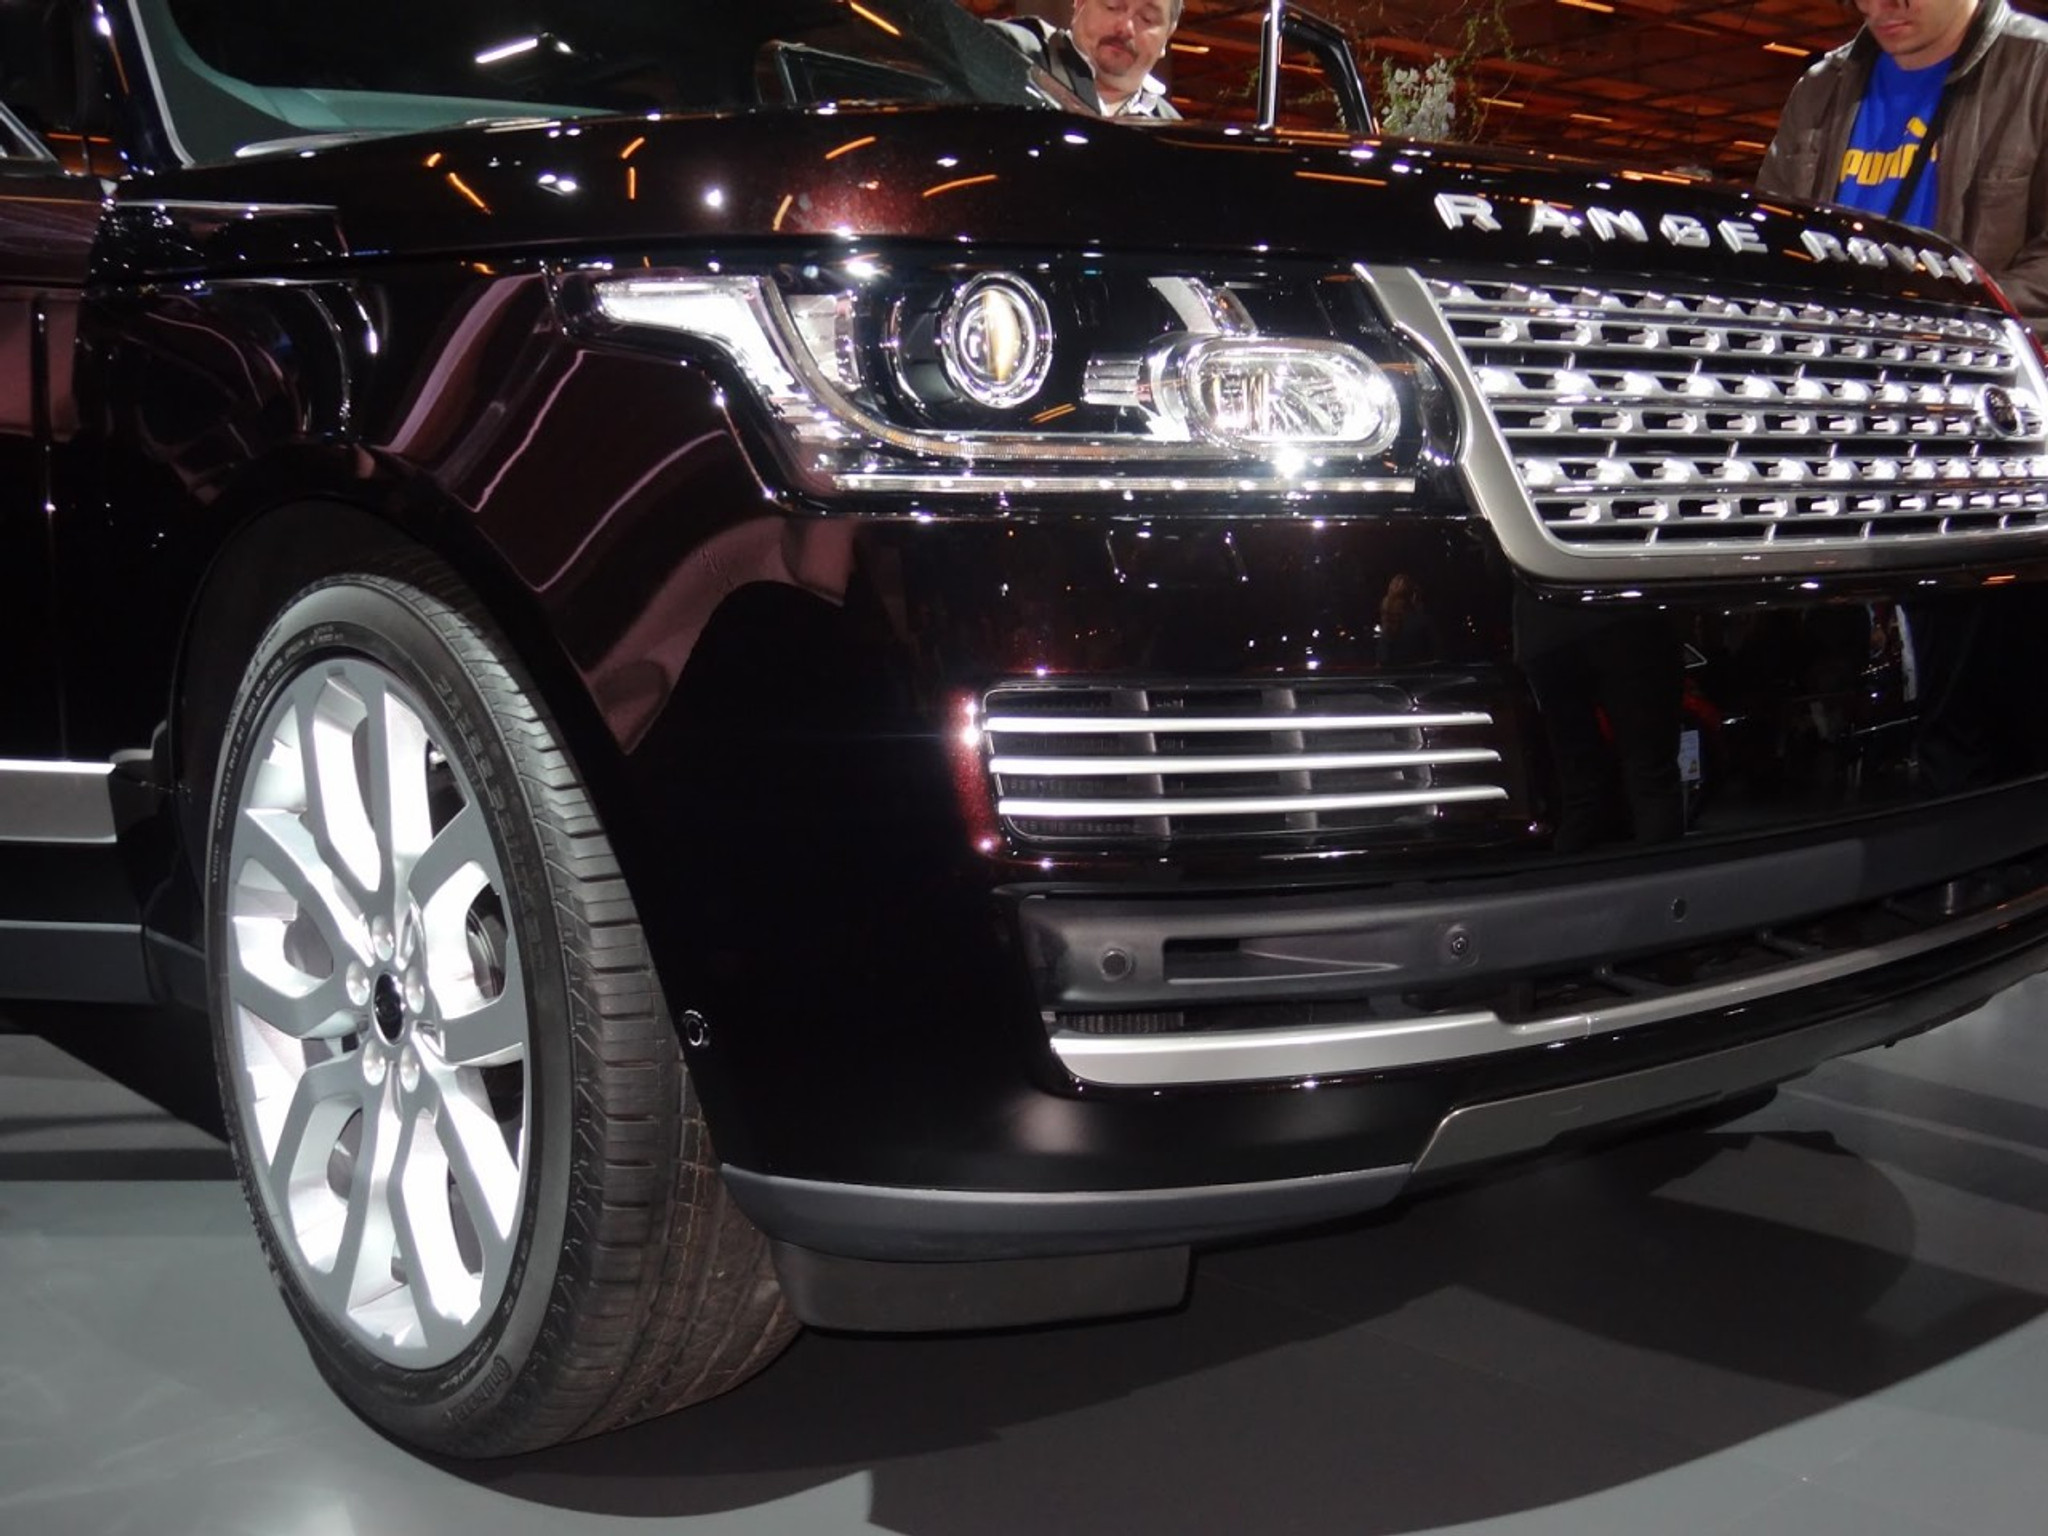 Range Rover Vogue L405 Headlights Meduza Design Ltd